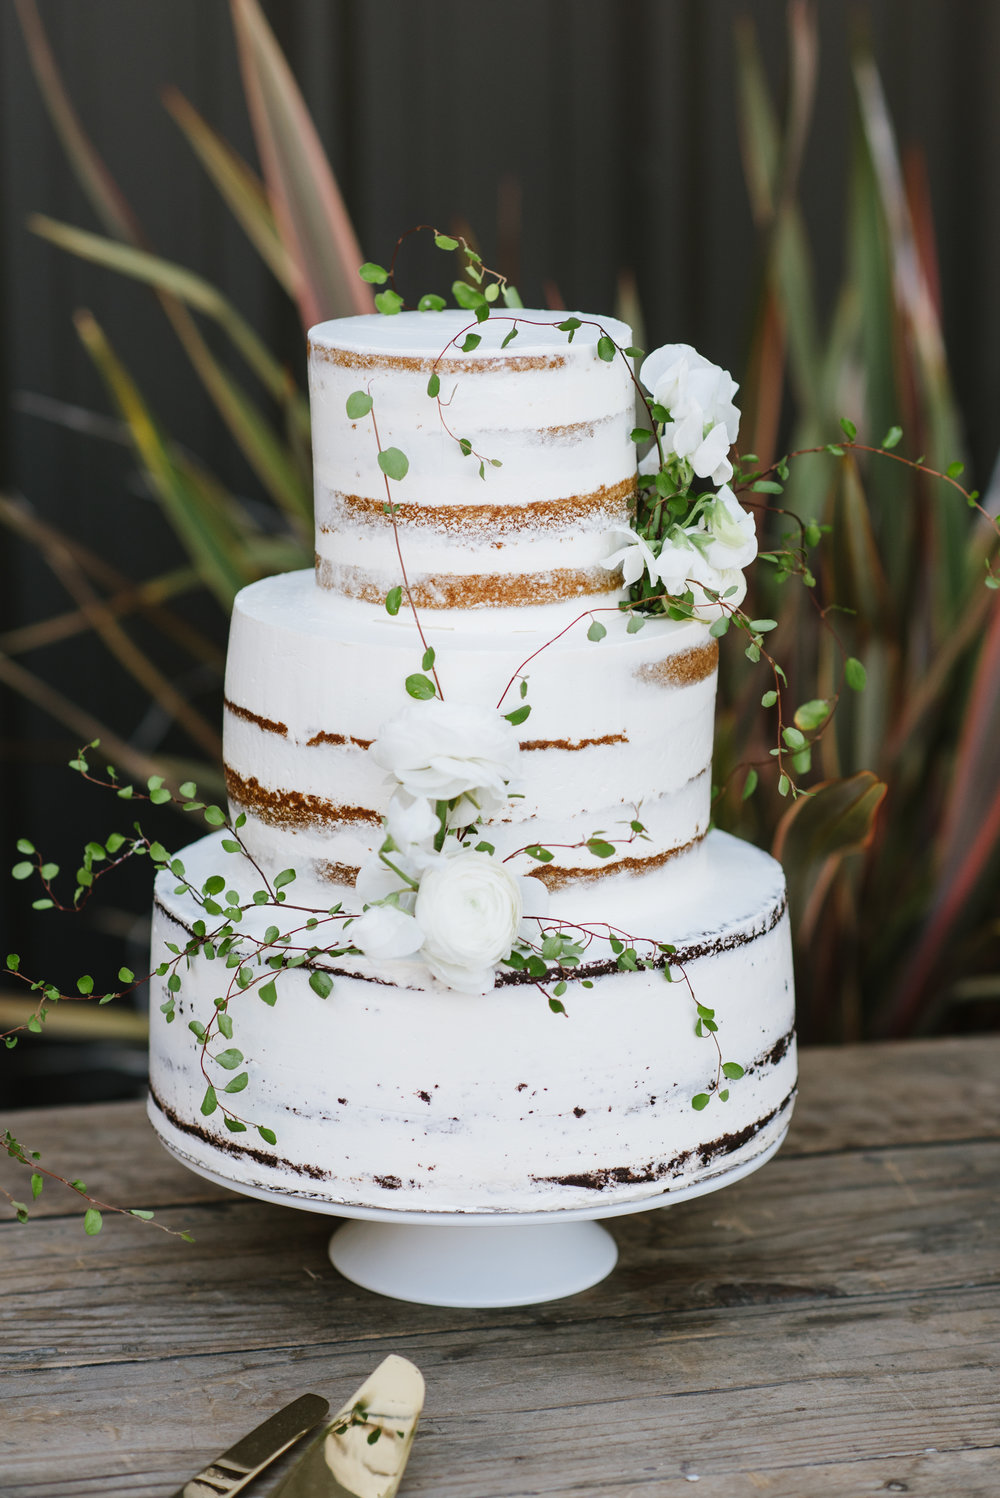 7 Fresh Greenery Ideas To Style Your Cake  | Angel Vine Cake by Cake Bloom | photo by Caitlin Oreilly